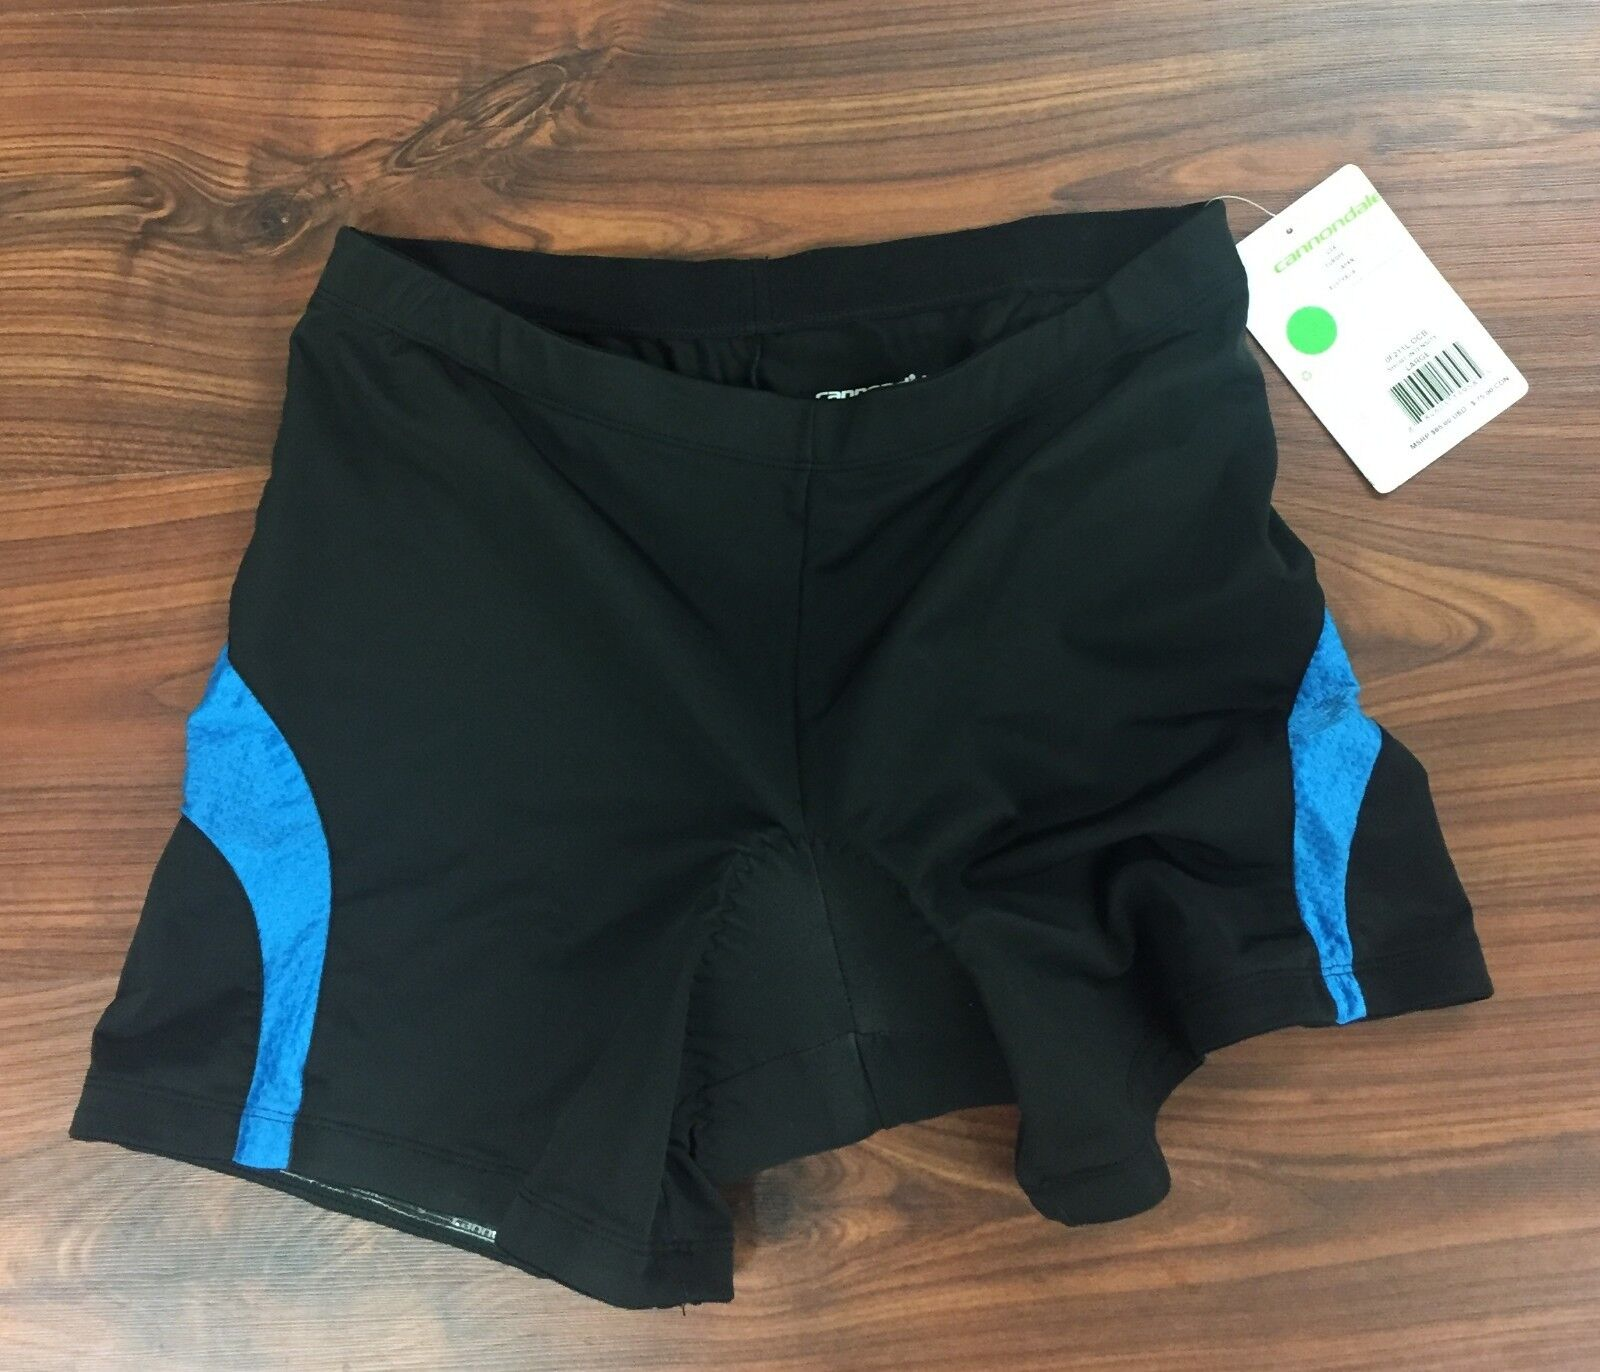 Cannondale Women's Intensity Cycling  Shorts Size L New  up to 42% off